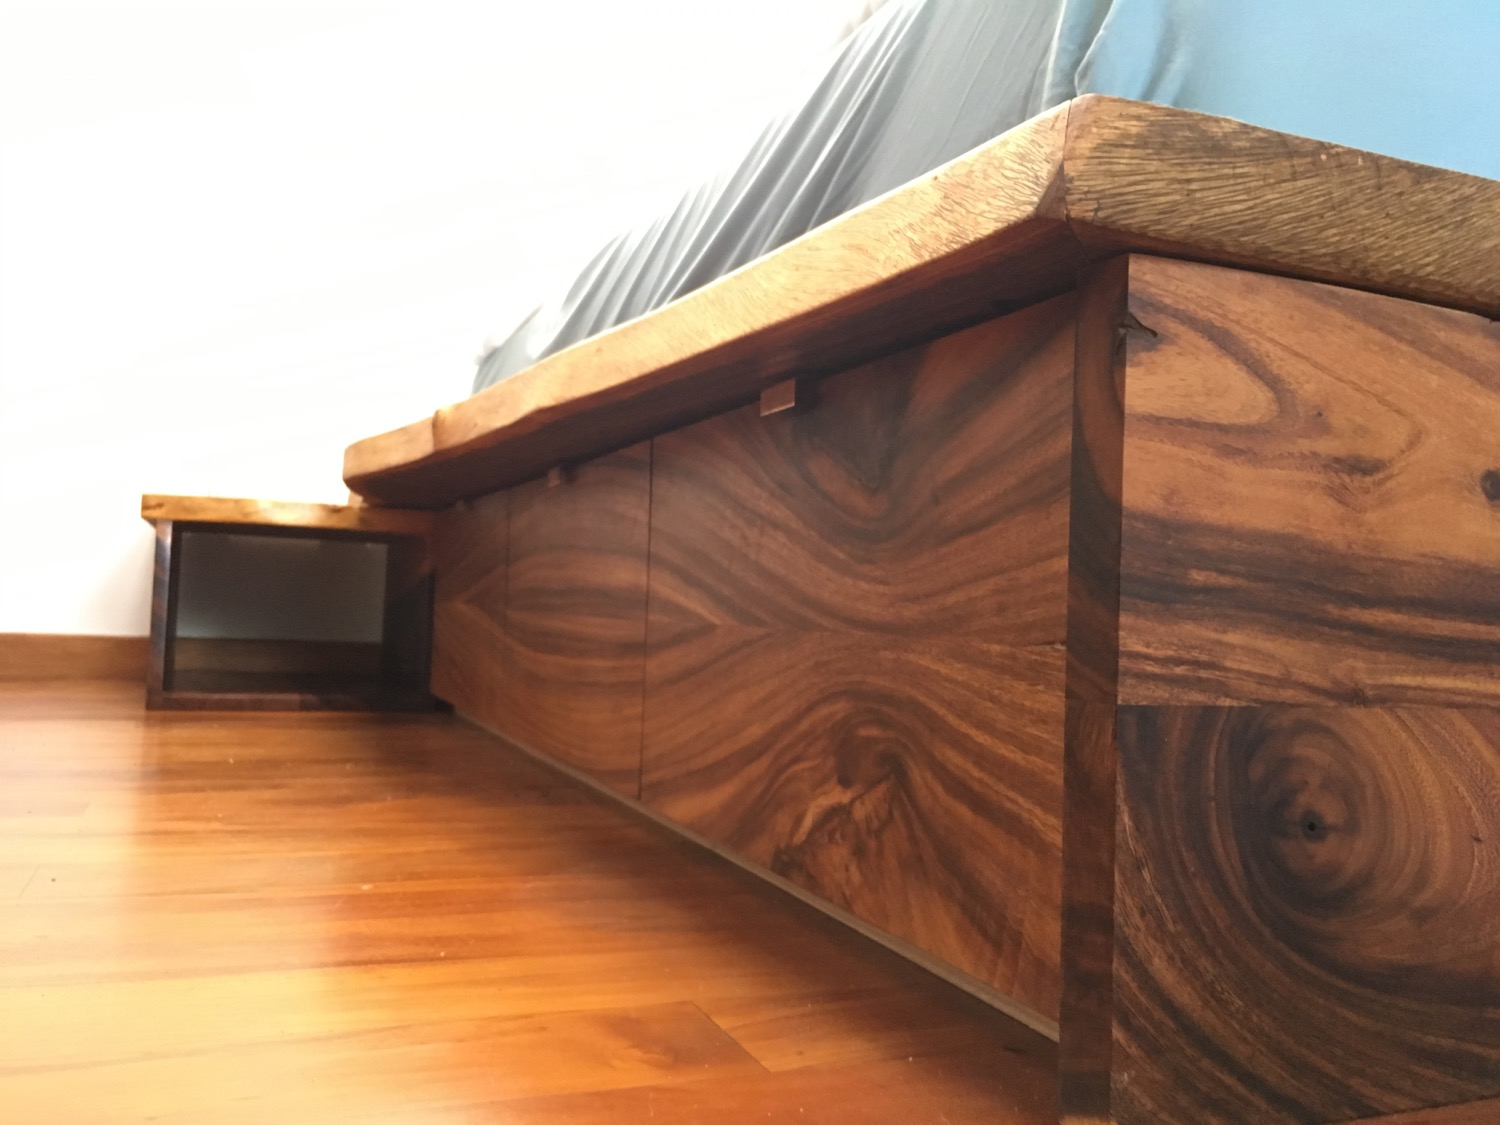 Bookmatched drawer fronts with continuous grain and low profile copper pulls. Drawers run on soft close glides.